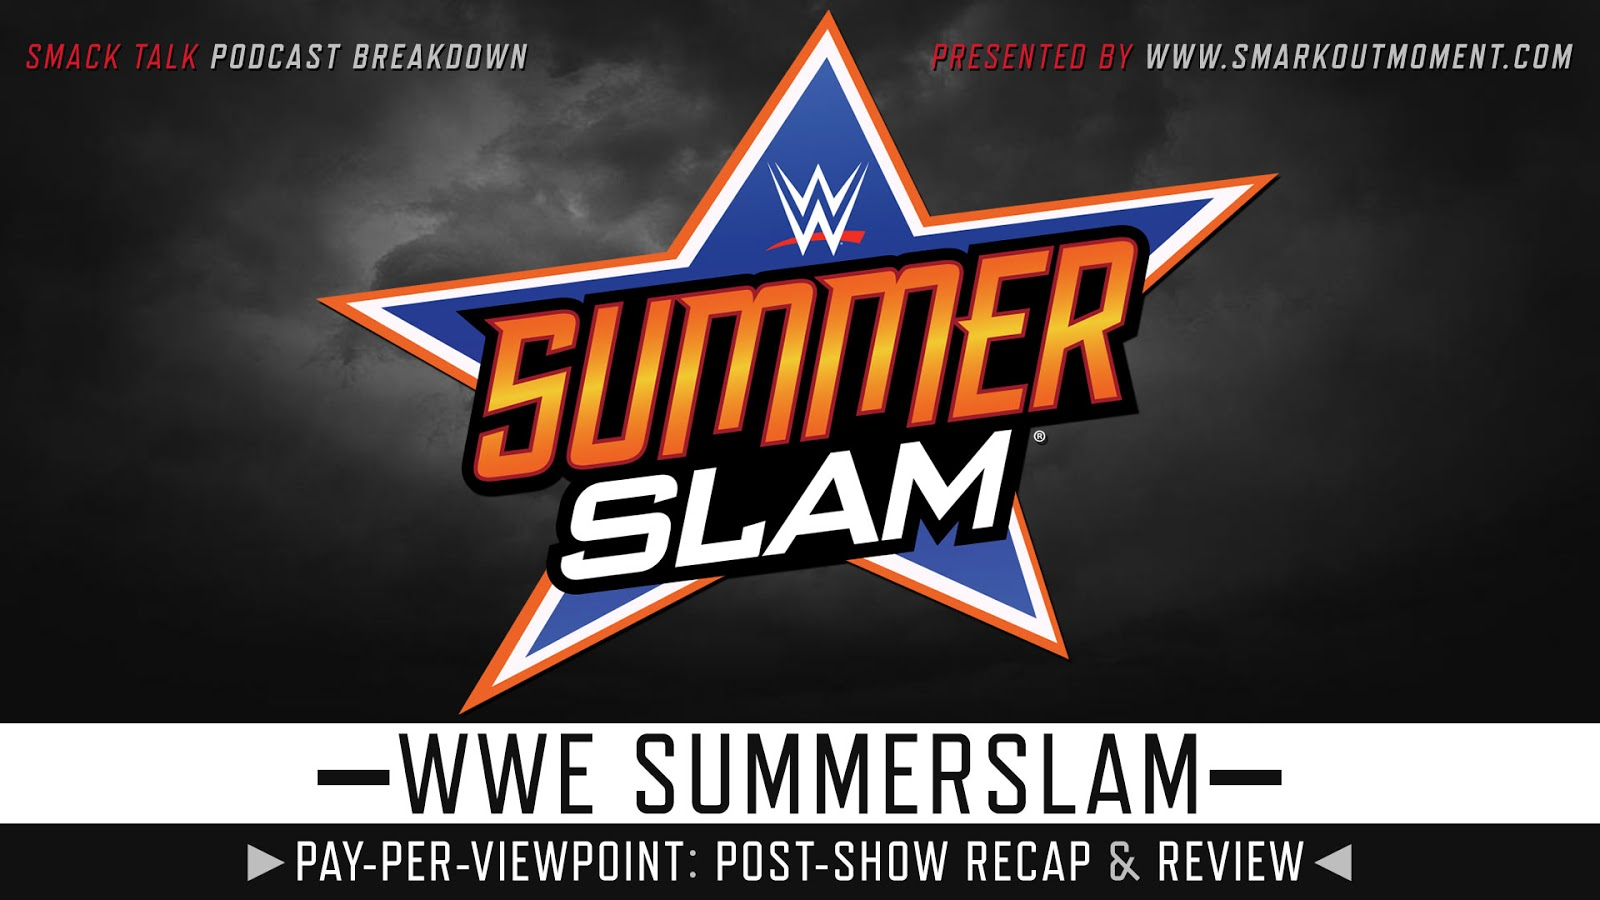 WWE SummerSlam 2018 Recap and Review Podcast